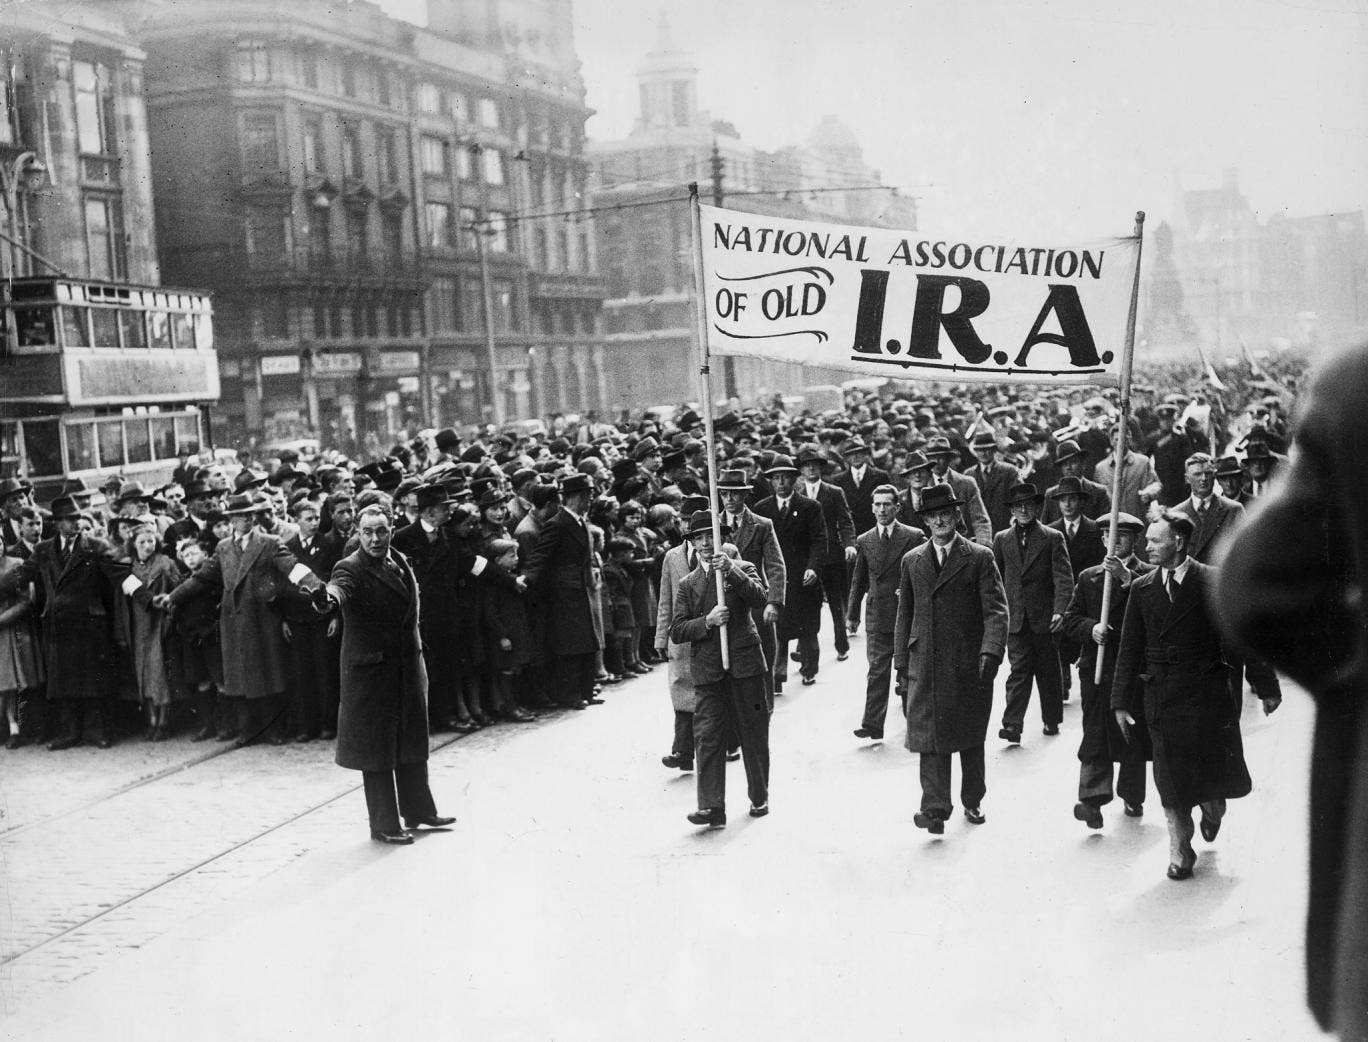 10th April 1939: Crowds march through the streets of Dublin to commerate the Easter Rising, the armed uprising of Irish nationalists against British rule in Ireland.